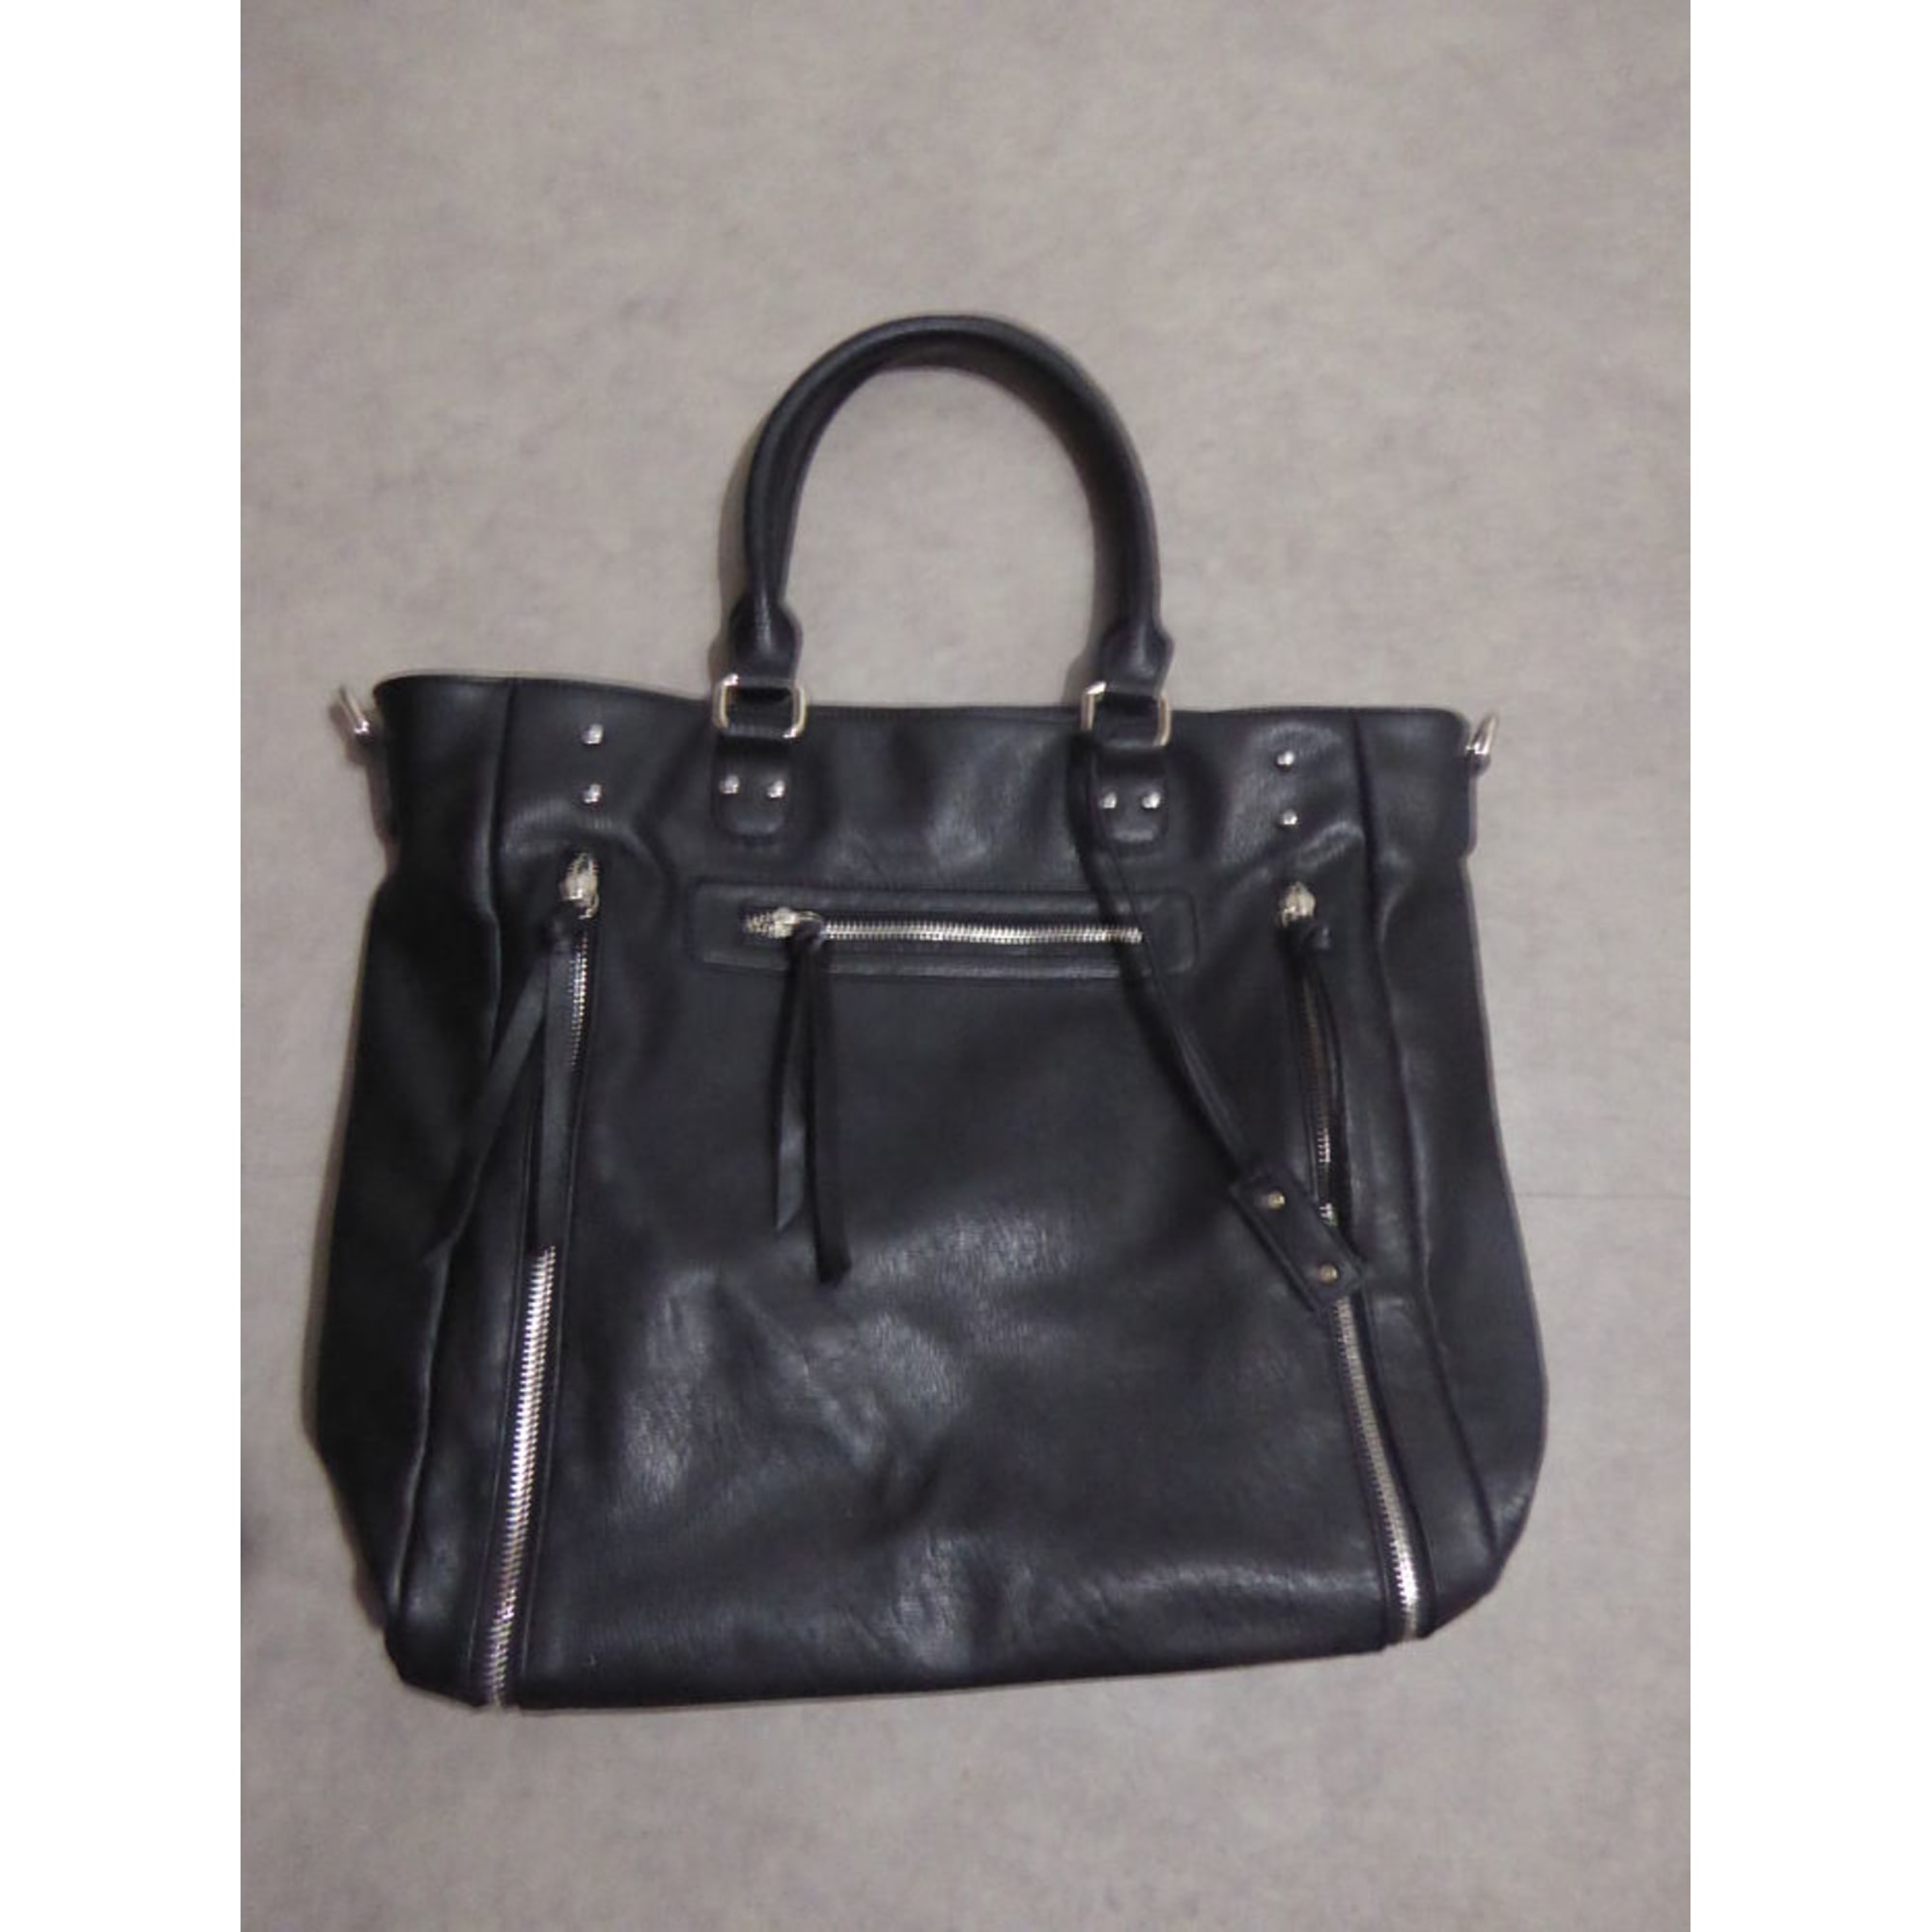 reasonably priced huge inventory buying new Sac à main en cuir MOA